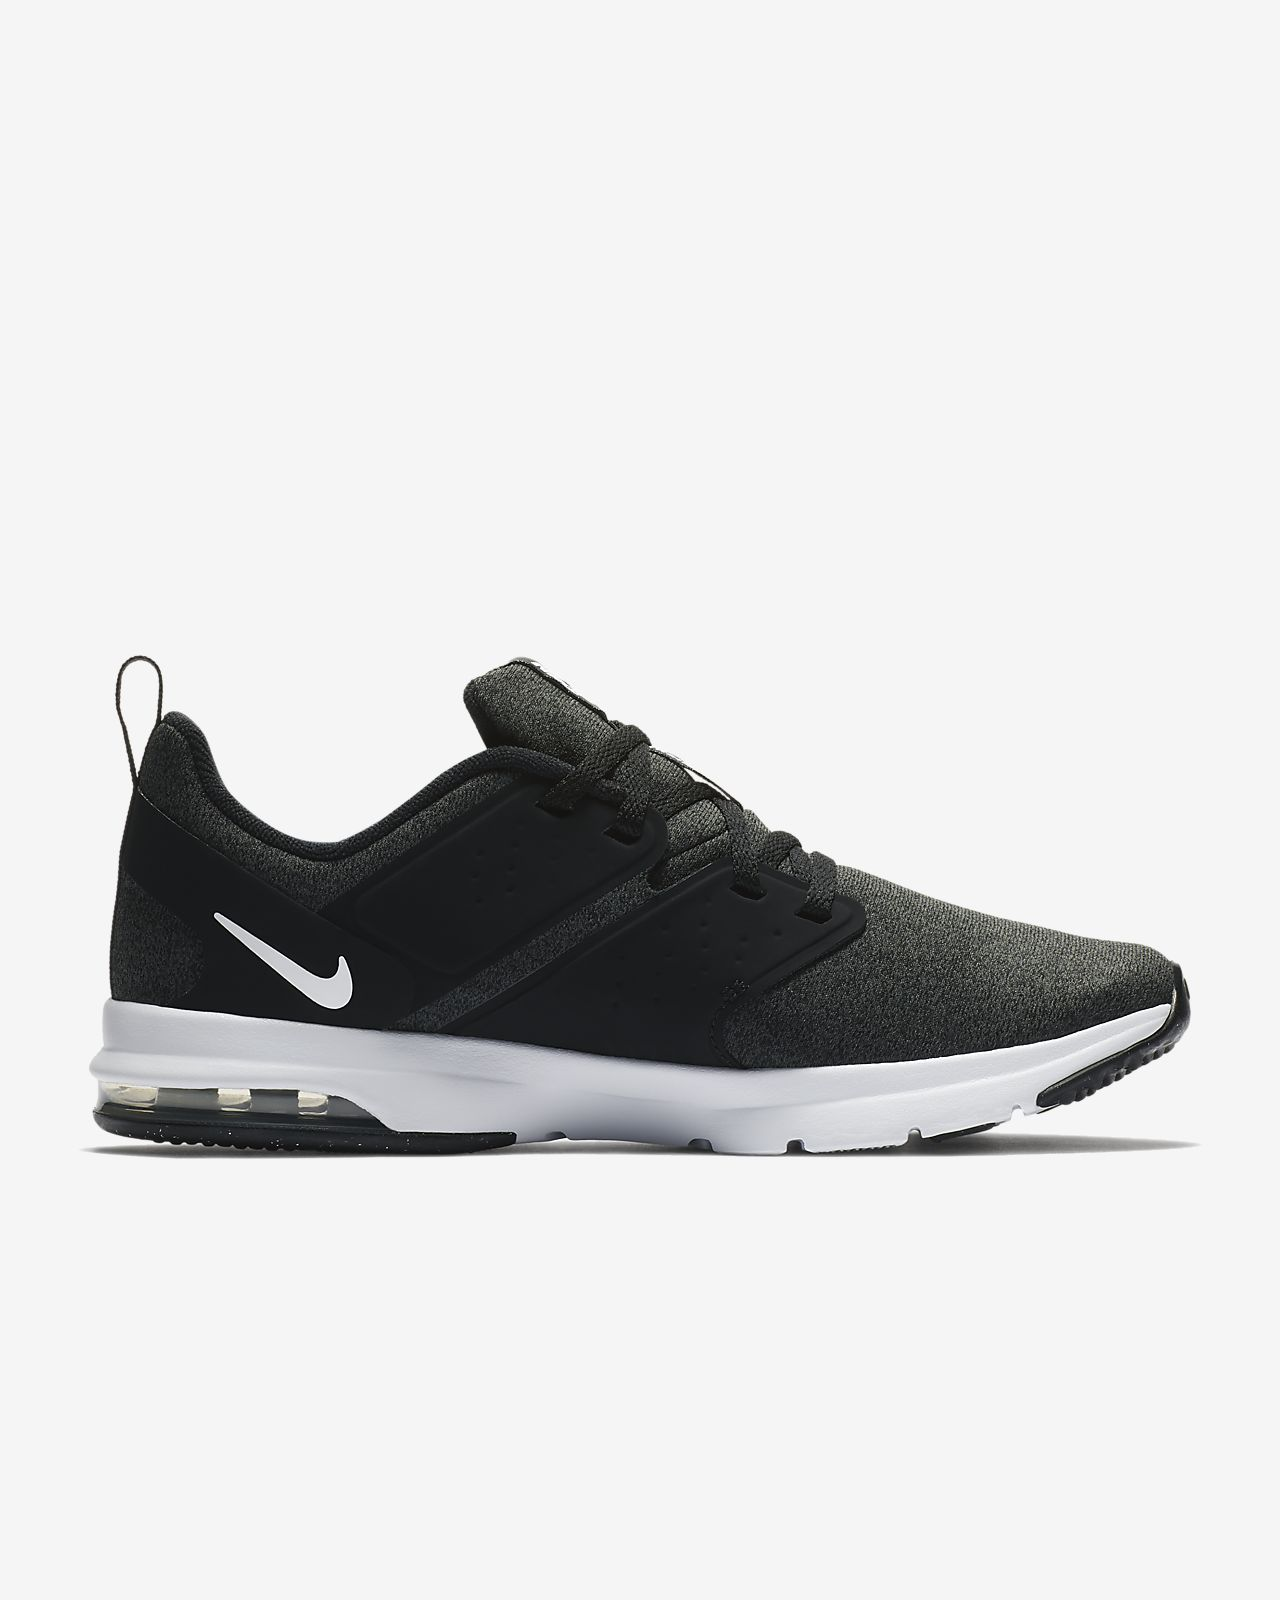 4d41e79251d nike zoom tr cross training shoe Find great deals and discounts on women s clearance  shoes ...